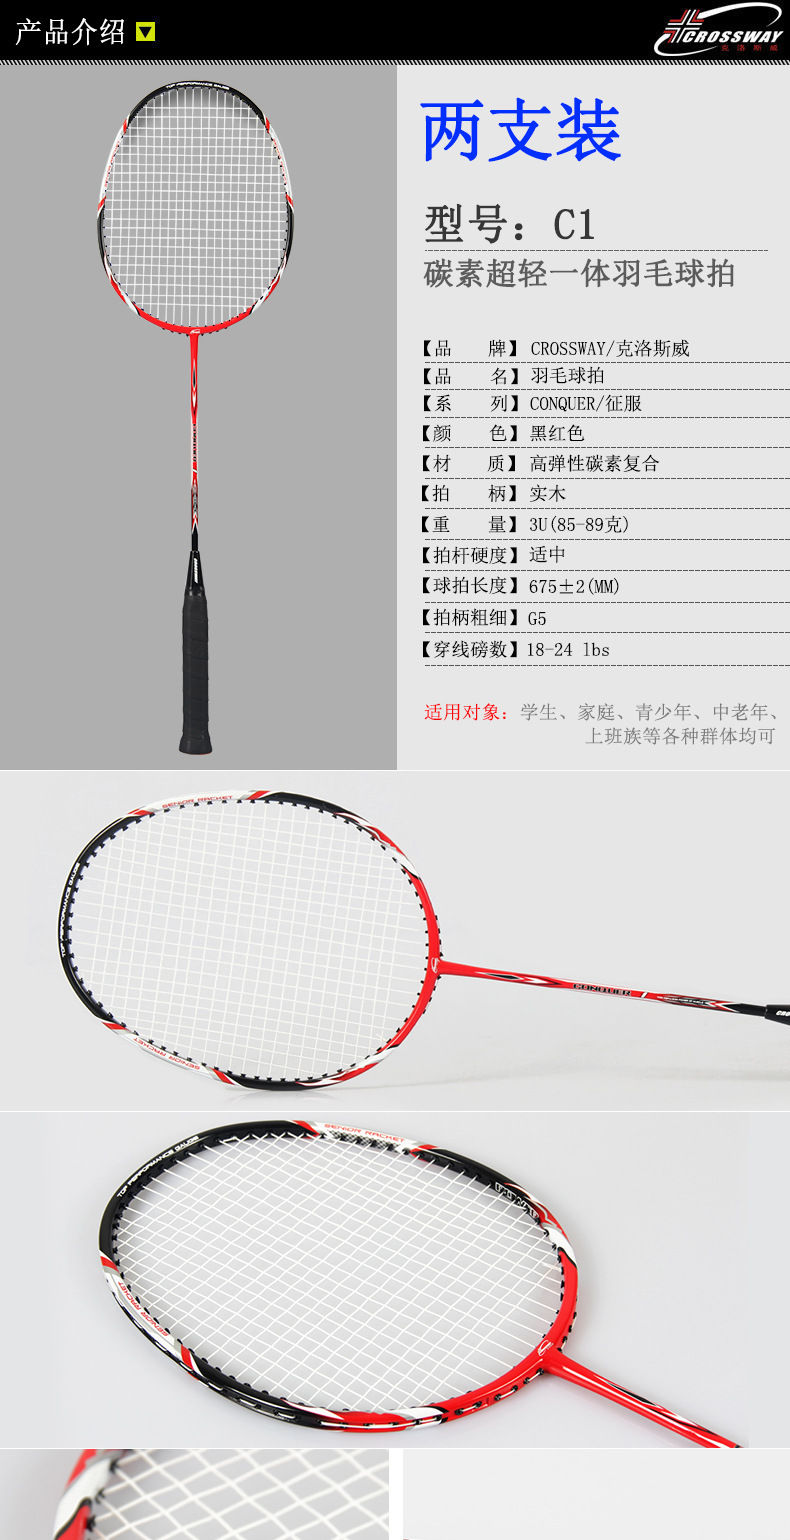 Crossway 2Pcs Best Doubles Match Badminton Rackets Carbon Smash Championships Shuttlecock Speedminton Racquets Equipment Kit Set 5